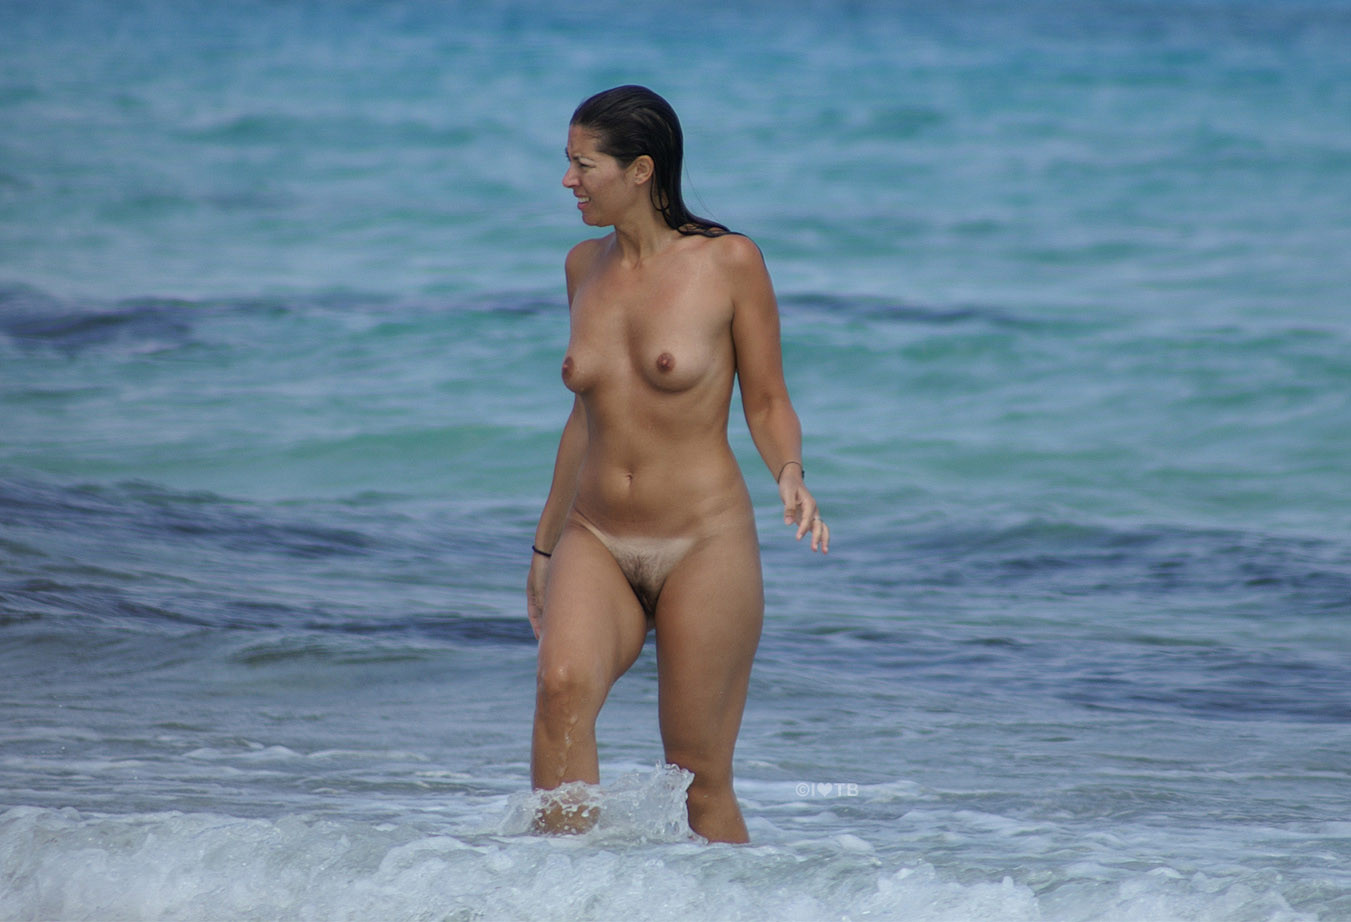 Sunbathing beaches nude